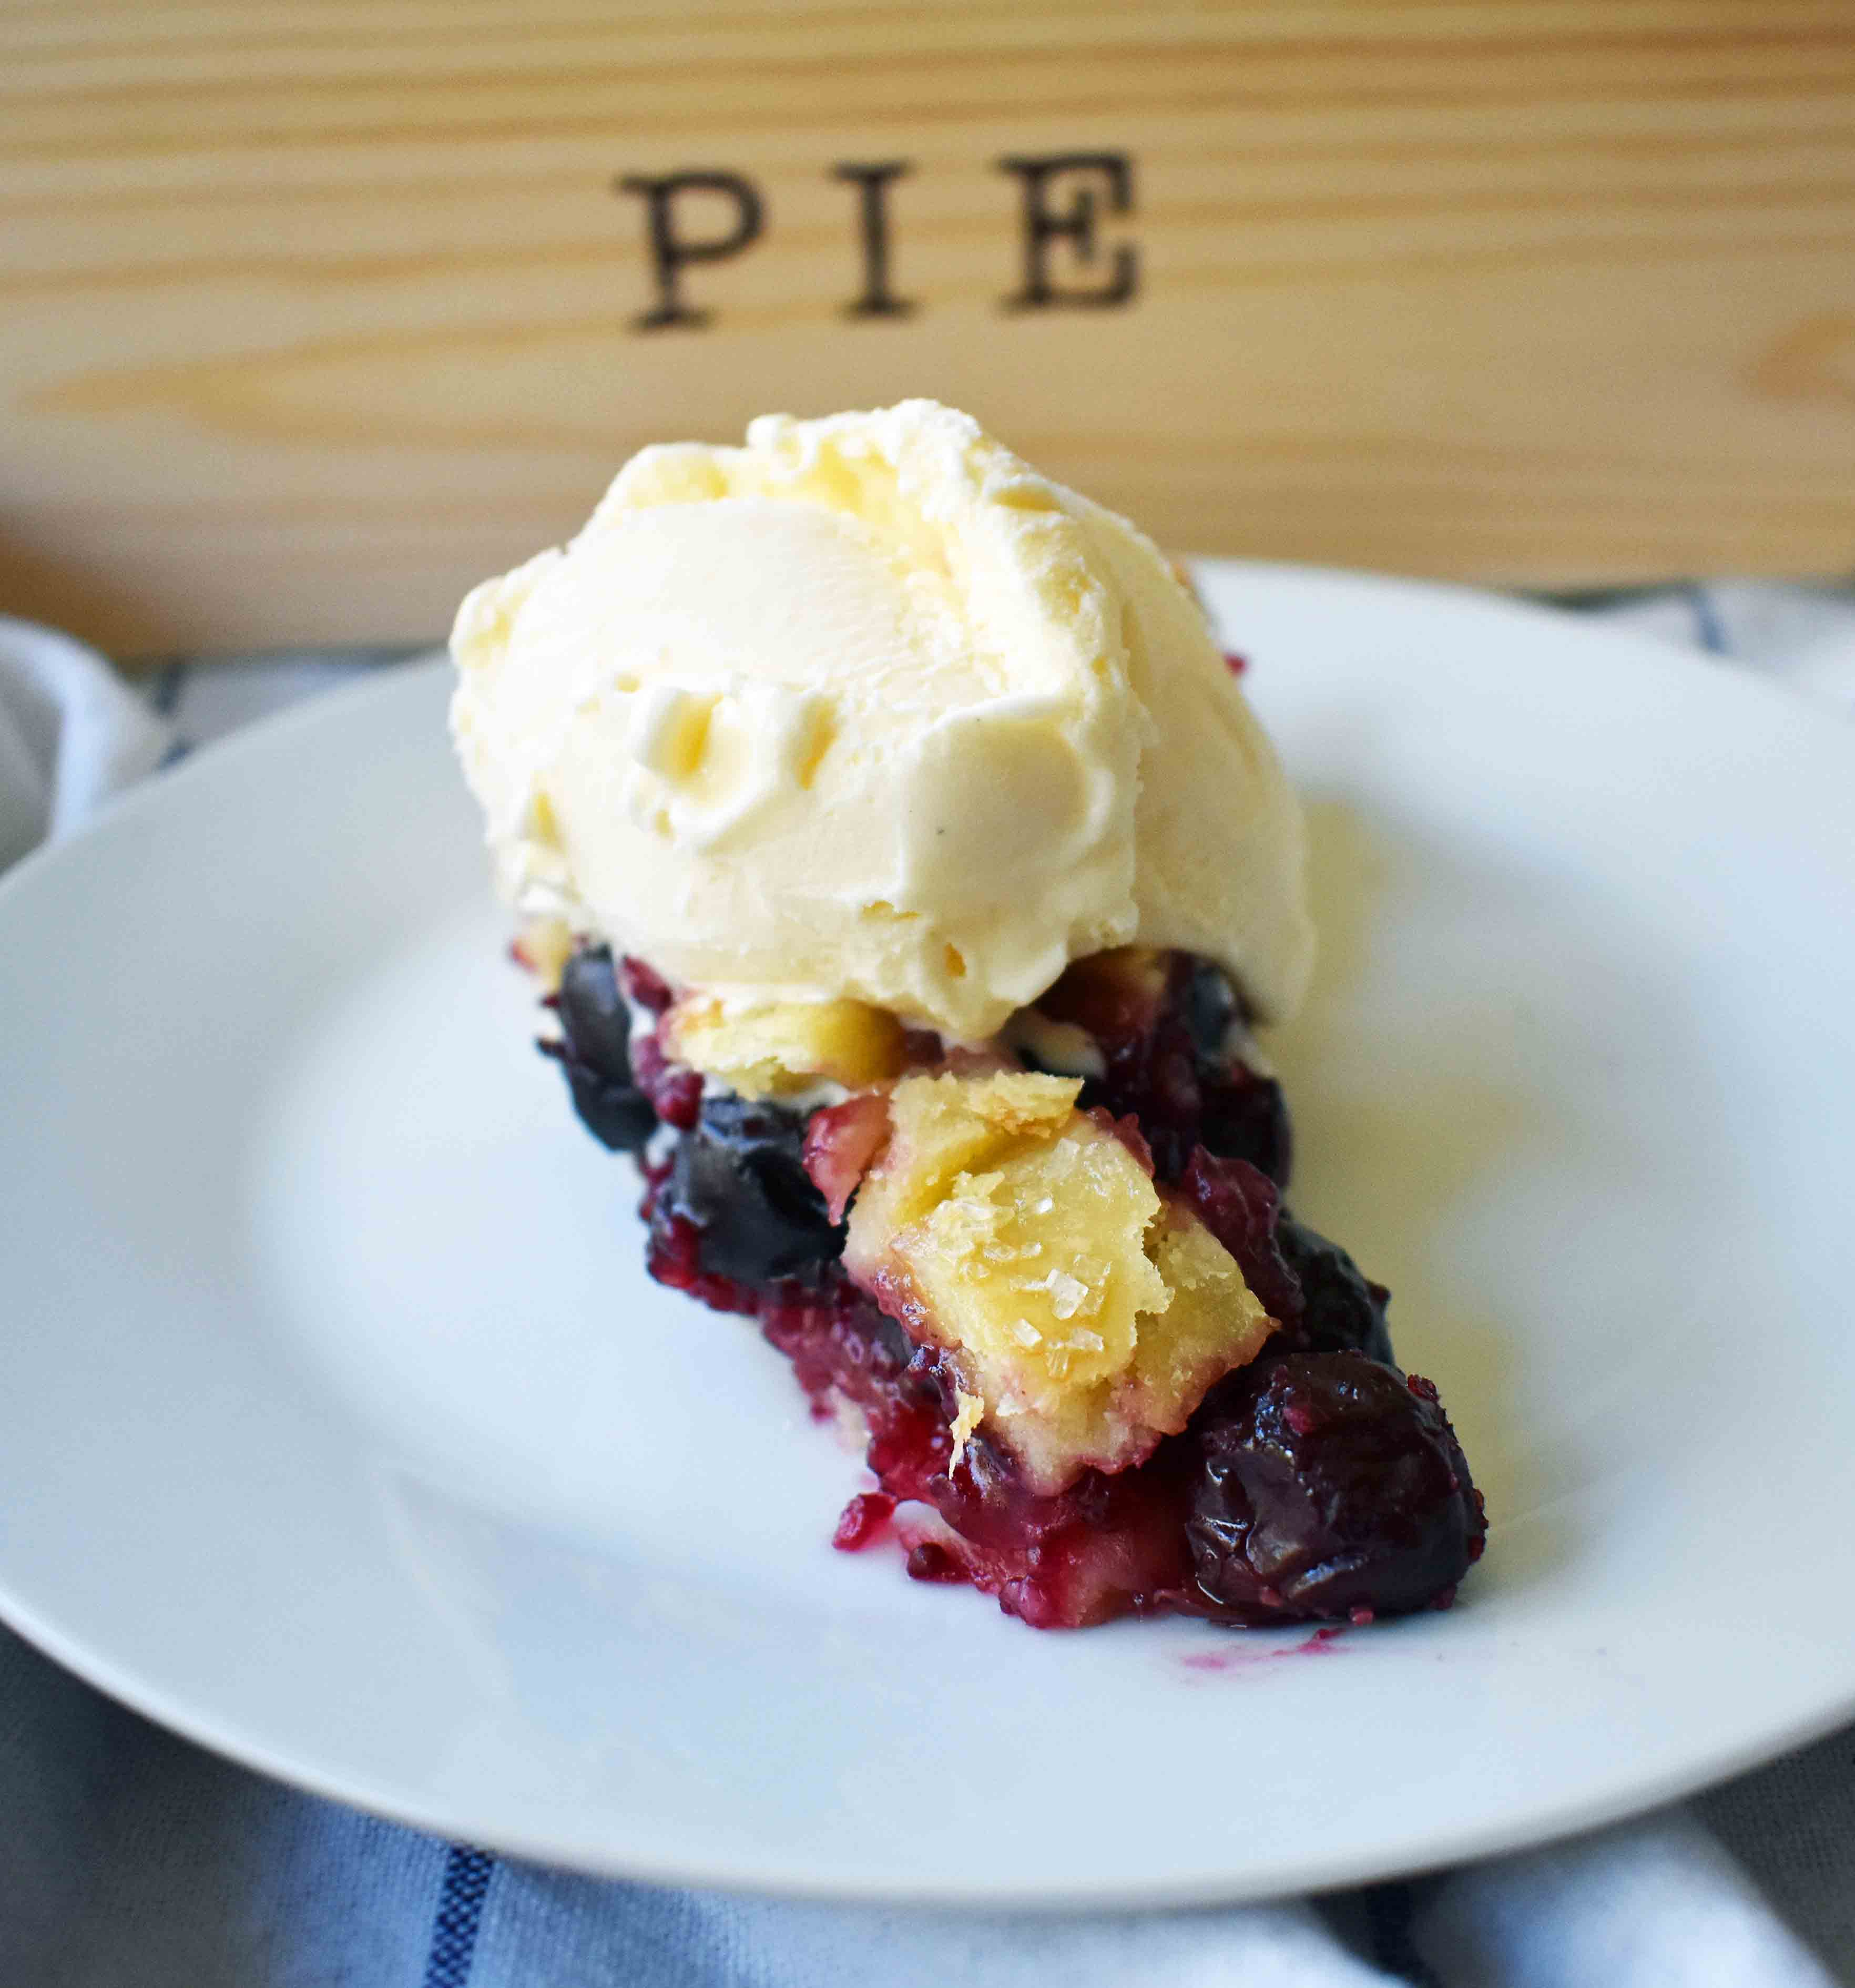 Sweet Cherry Pie by Modern Honey. Sweet Cherries in a simple glaze on top of a flaky, buttery pie crust.